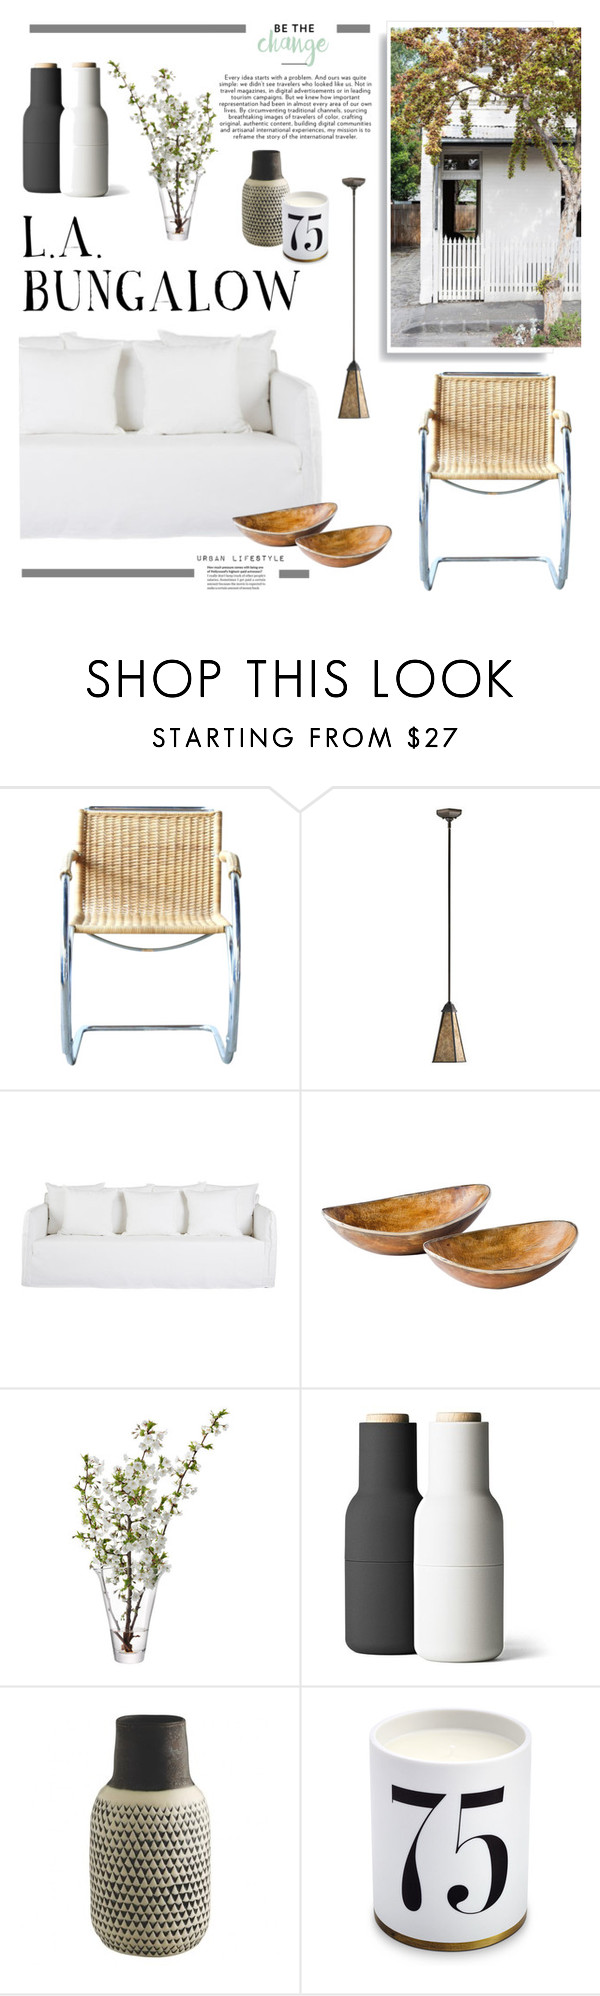 """L.A. BUNGALOW"" by barngirl ❤ liked on Polyvore featuring interior, interiors, interior design, home, home decor, interior decorating, Quorum, Olympia, LSA International and Minimal"